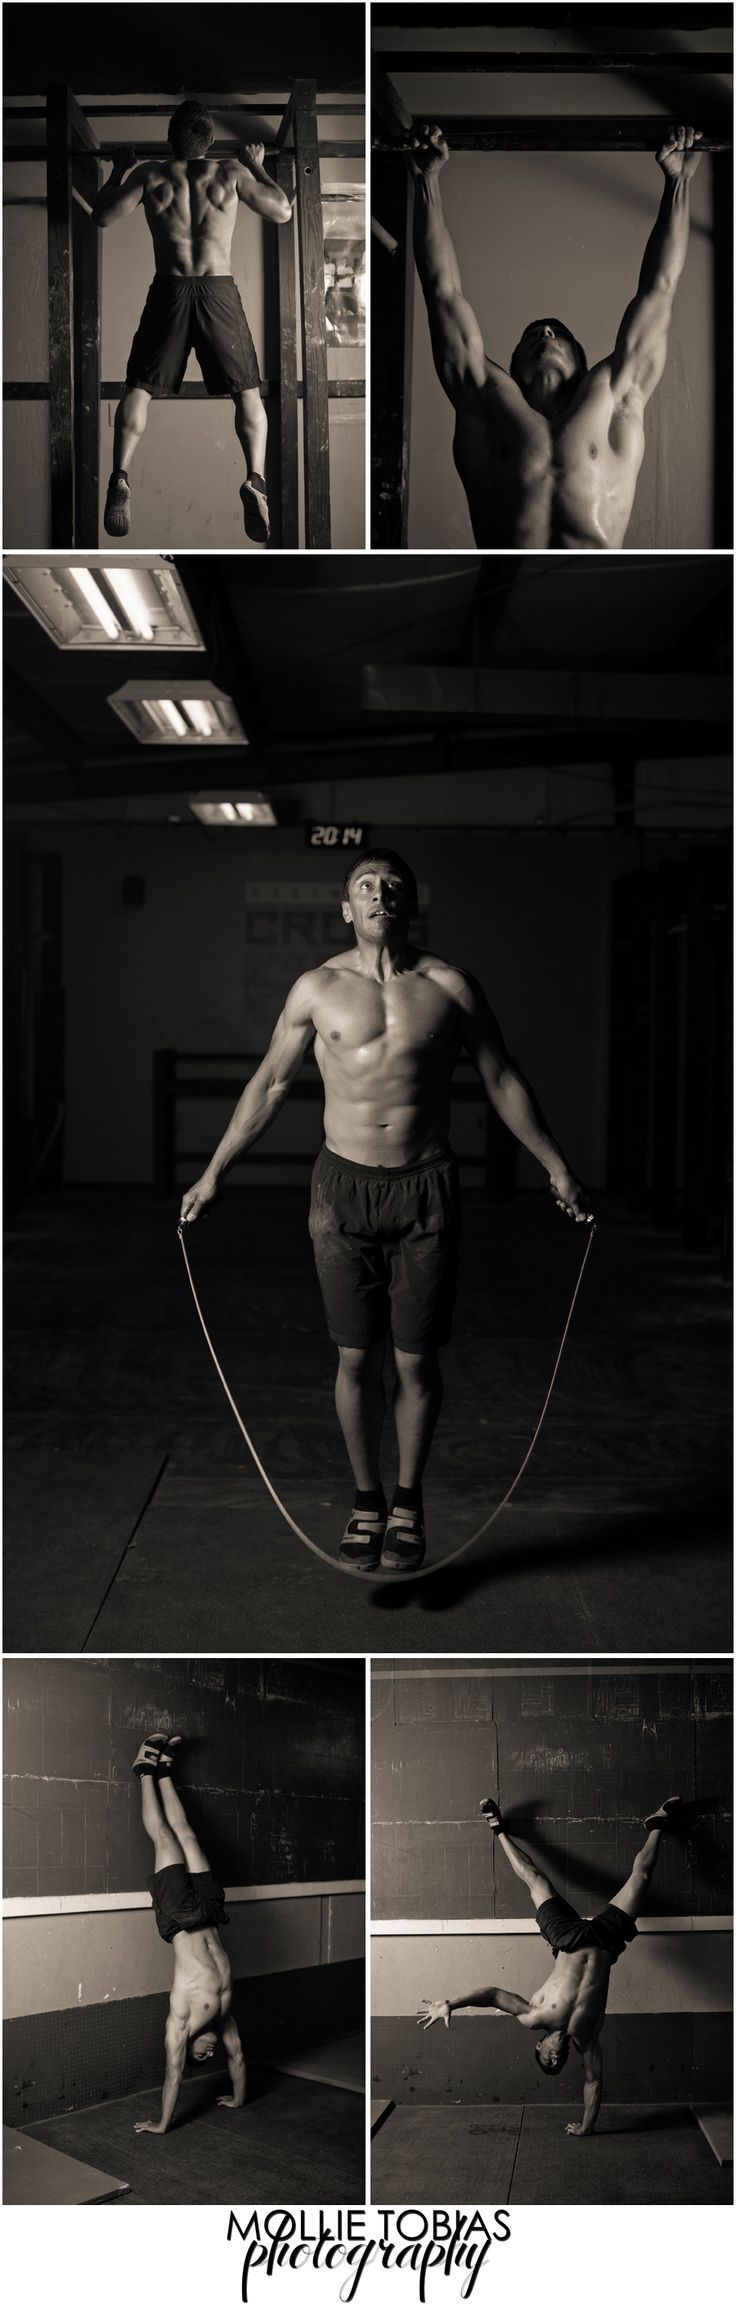 /mollie/ Tobias has some awesome CrossFit photography on her workout board! Check it out.